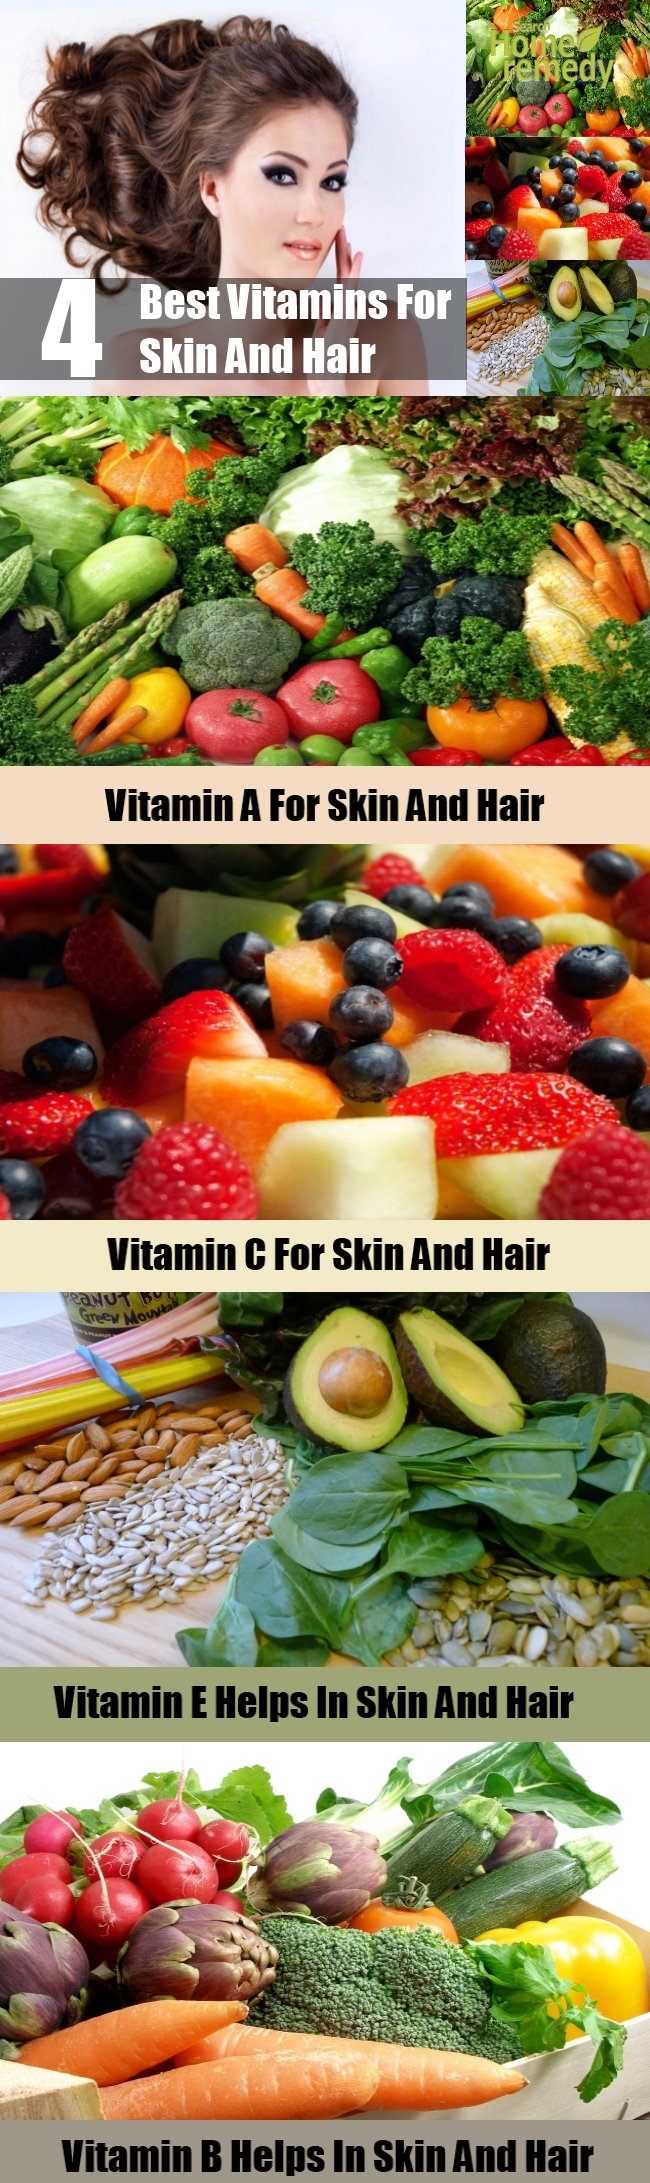 4 Best Vitamins For Skin And Hair